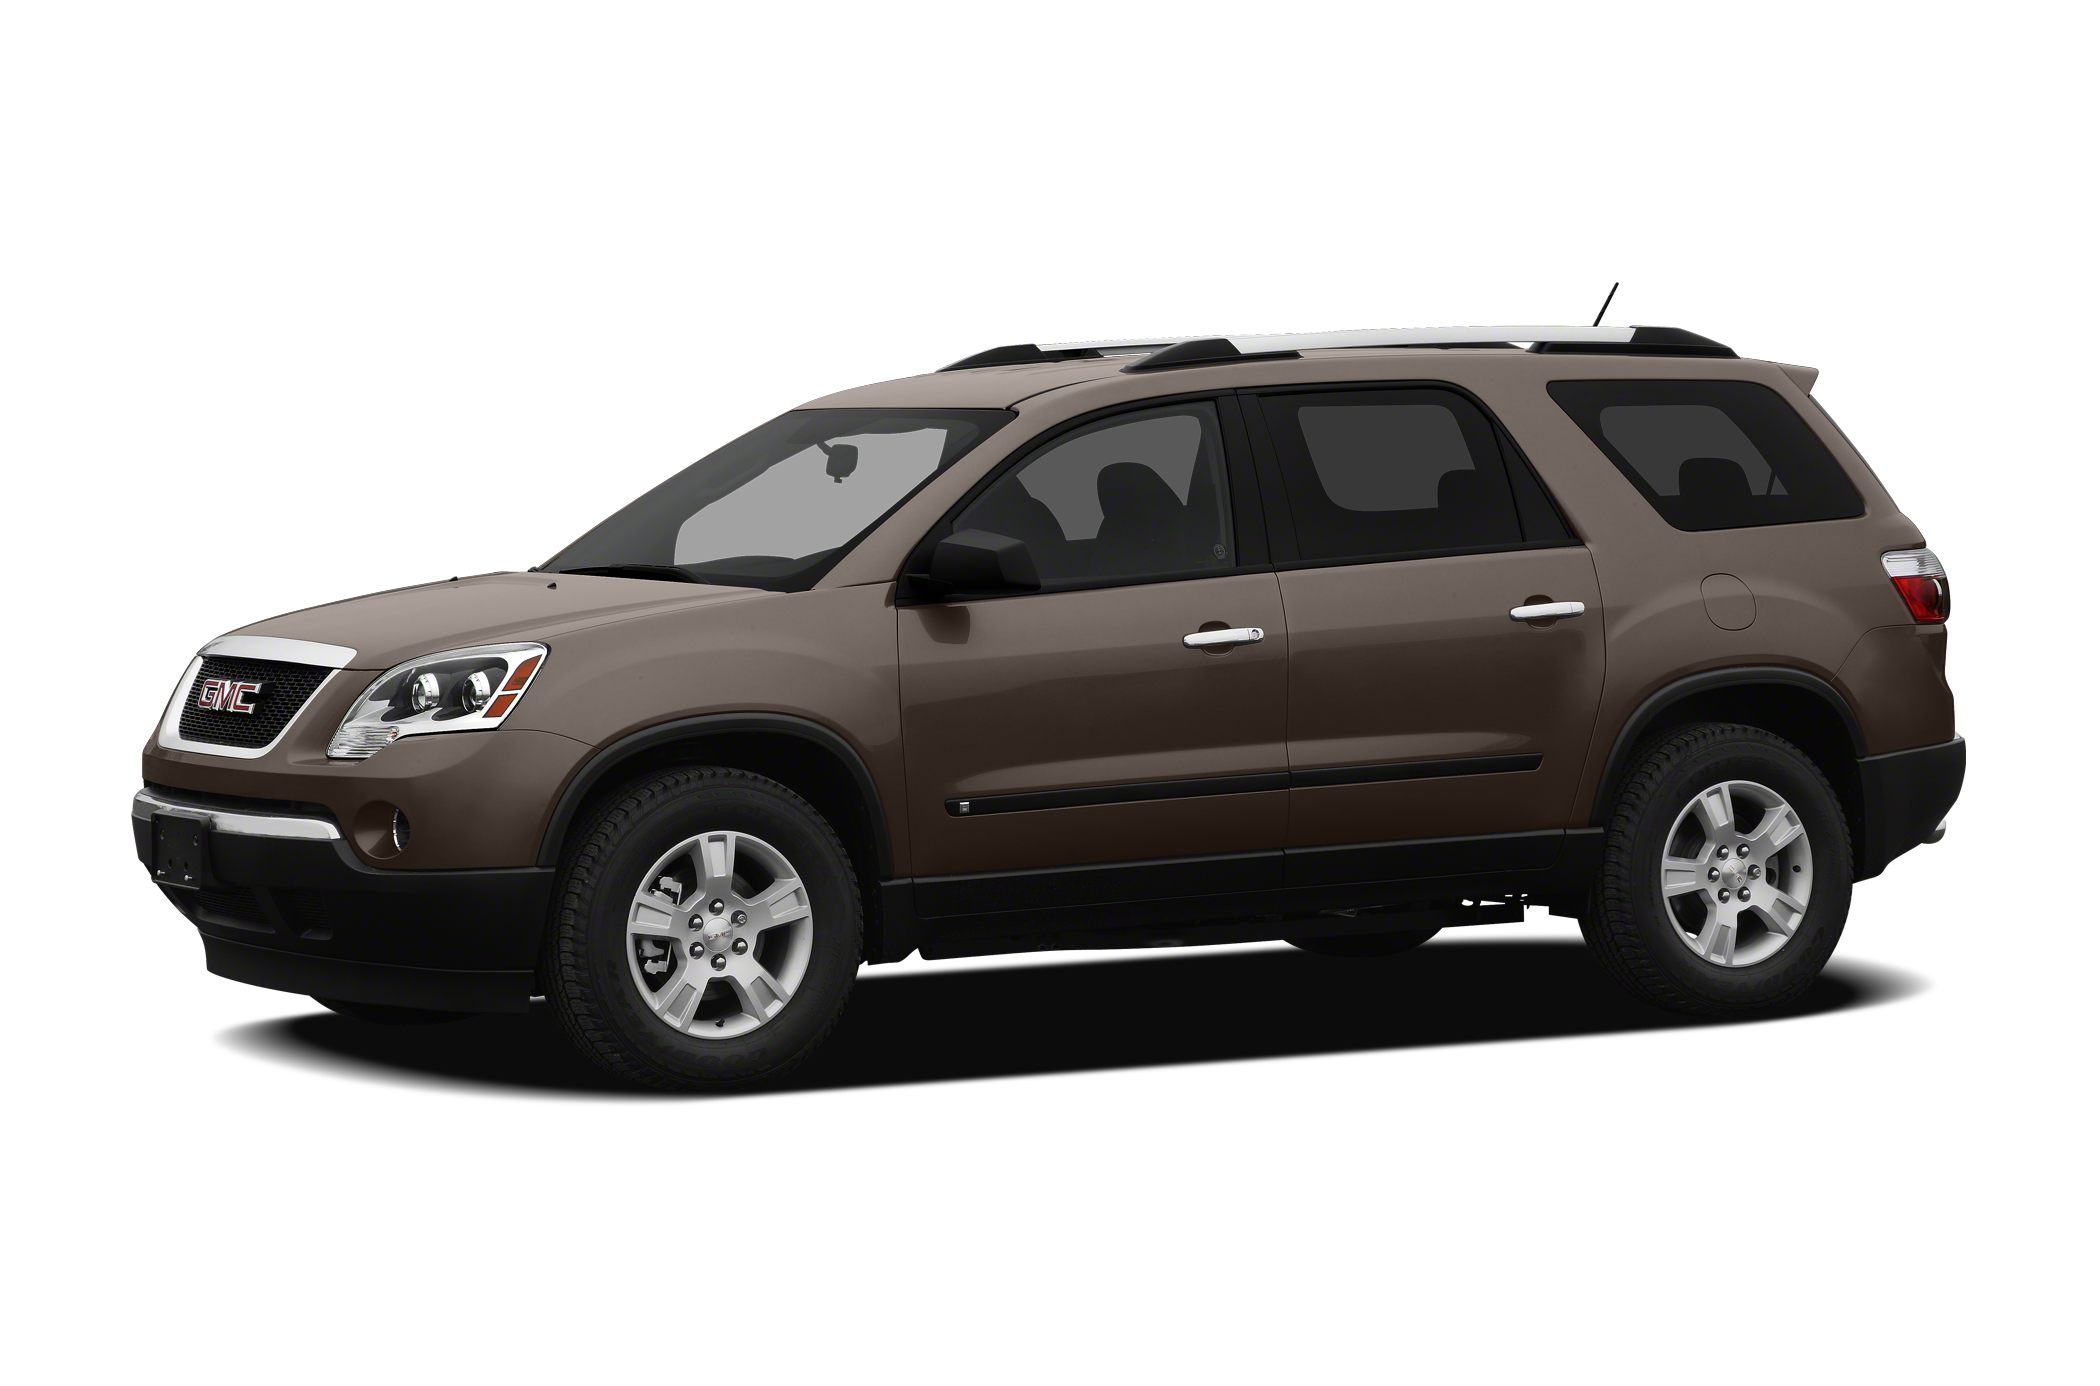 2012 GMC Acadia SL SUV for sale in Erie for $20,650 with 72,834 miles